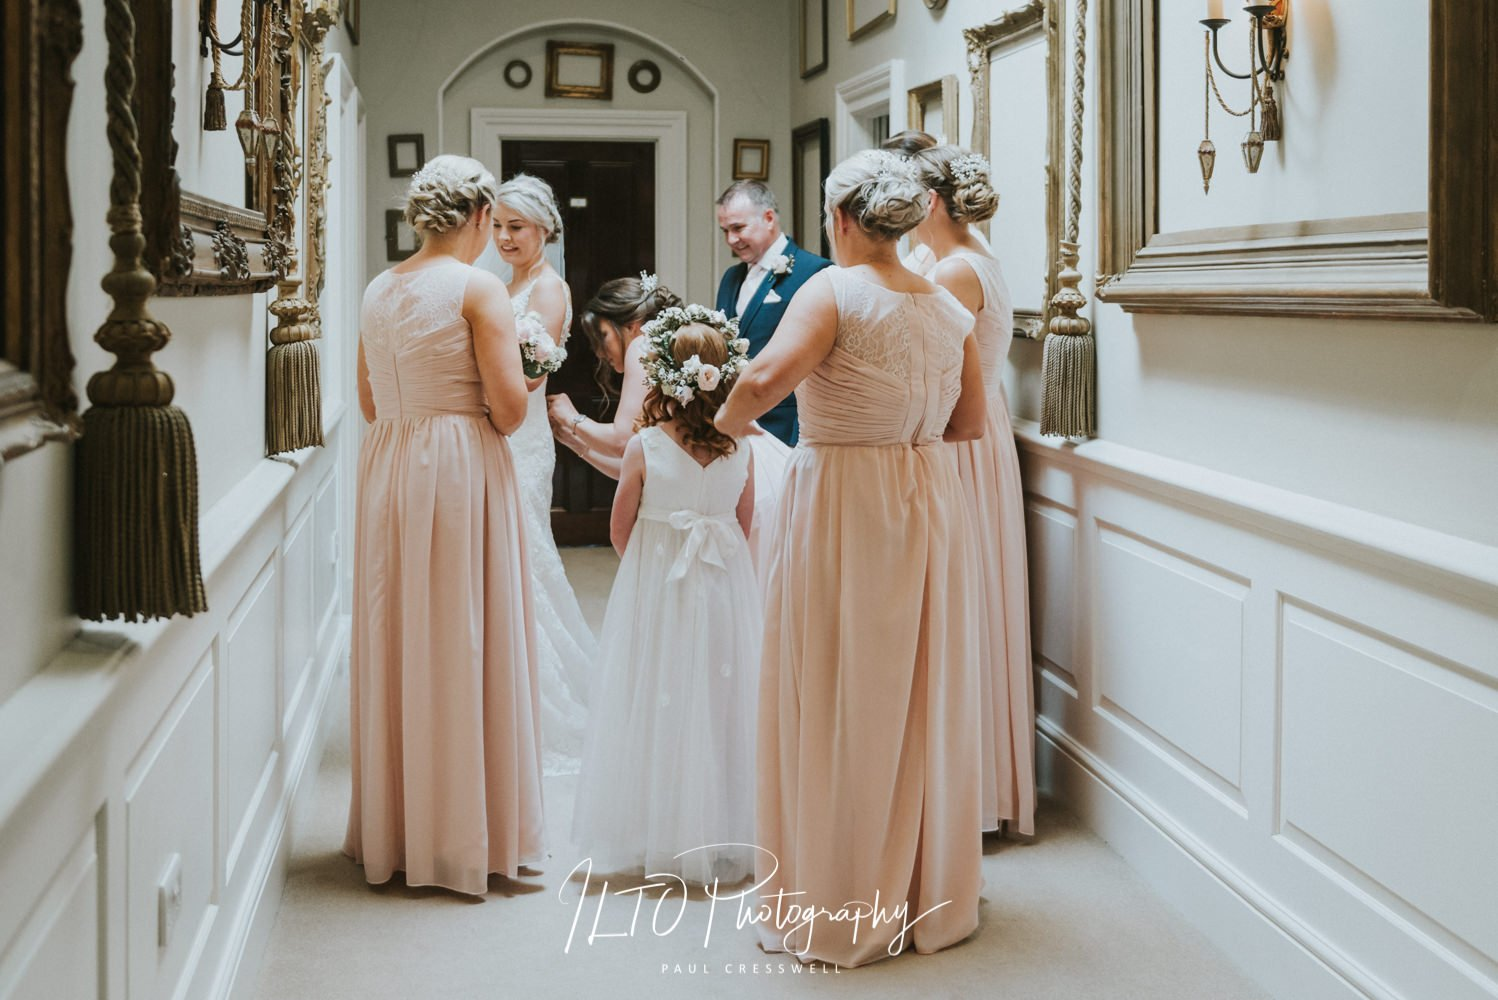 Stubton Hall wedding affordable photographer photography Nottingham